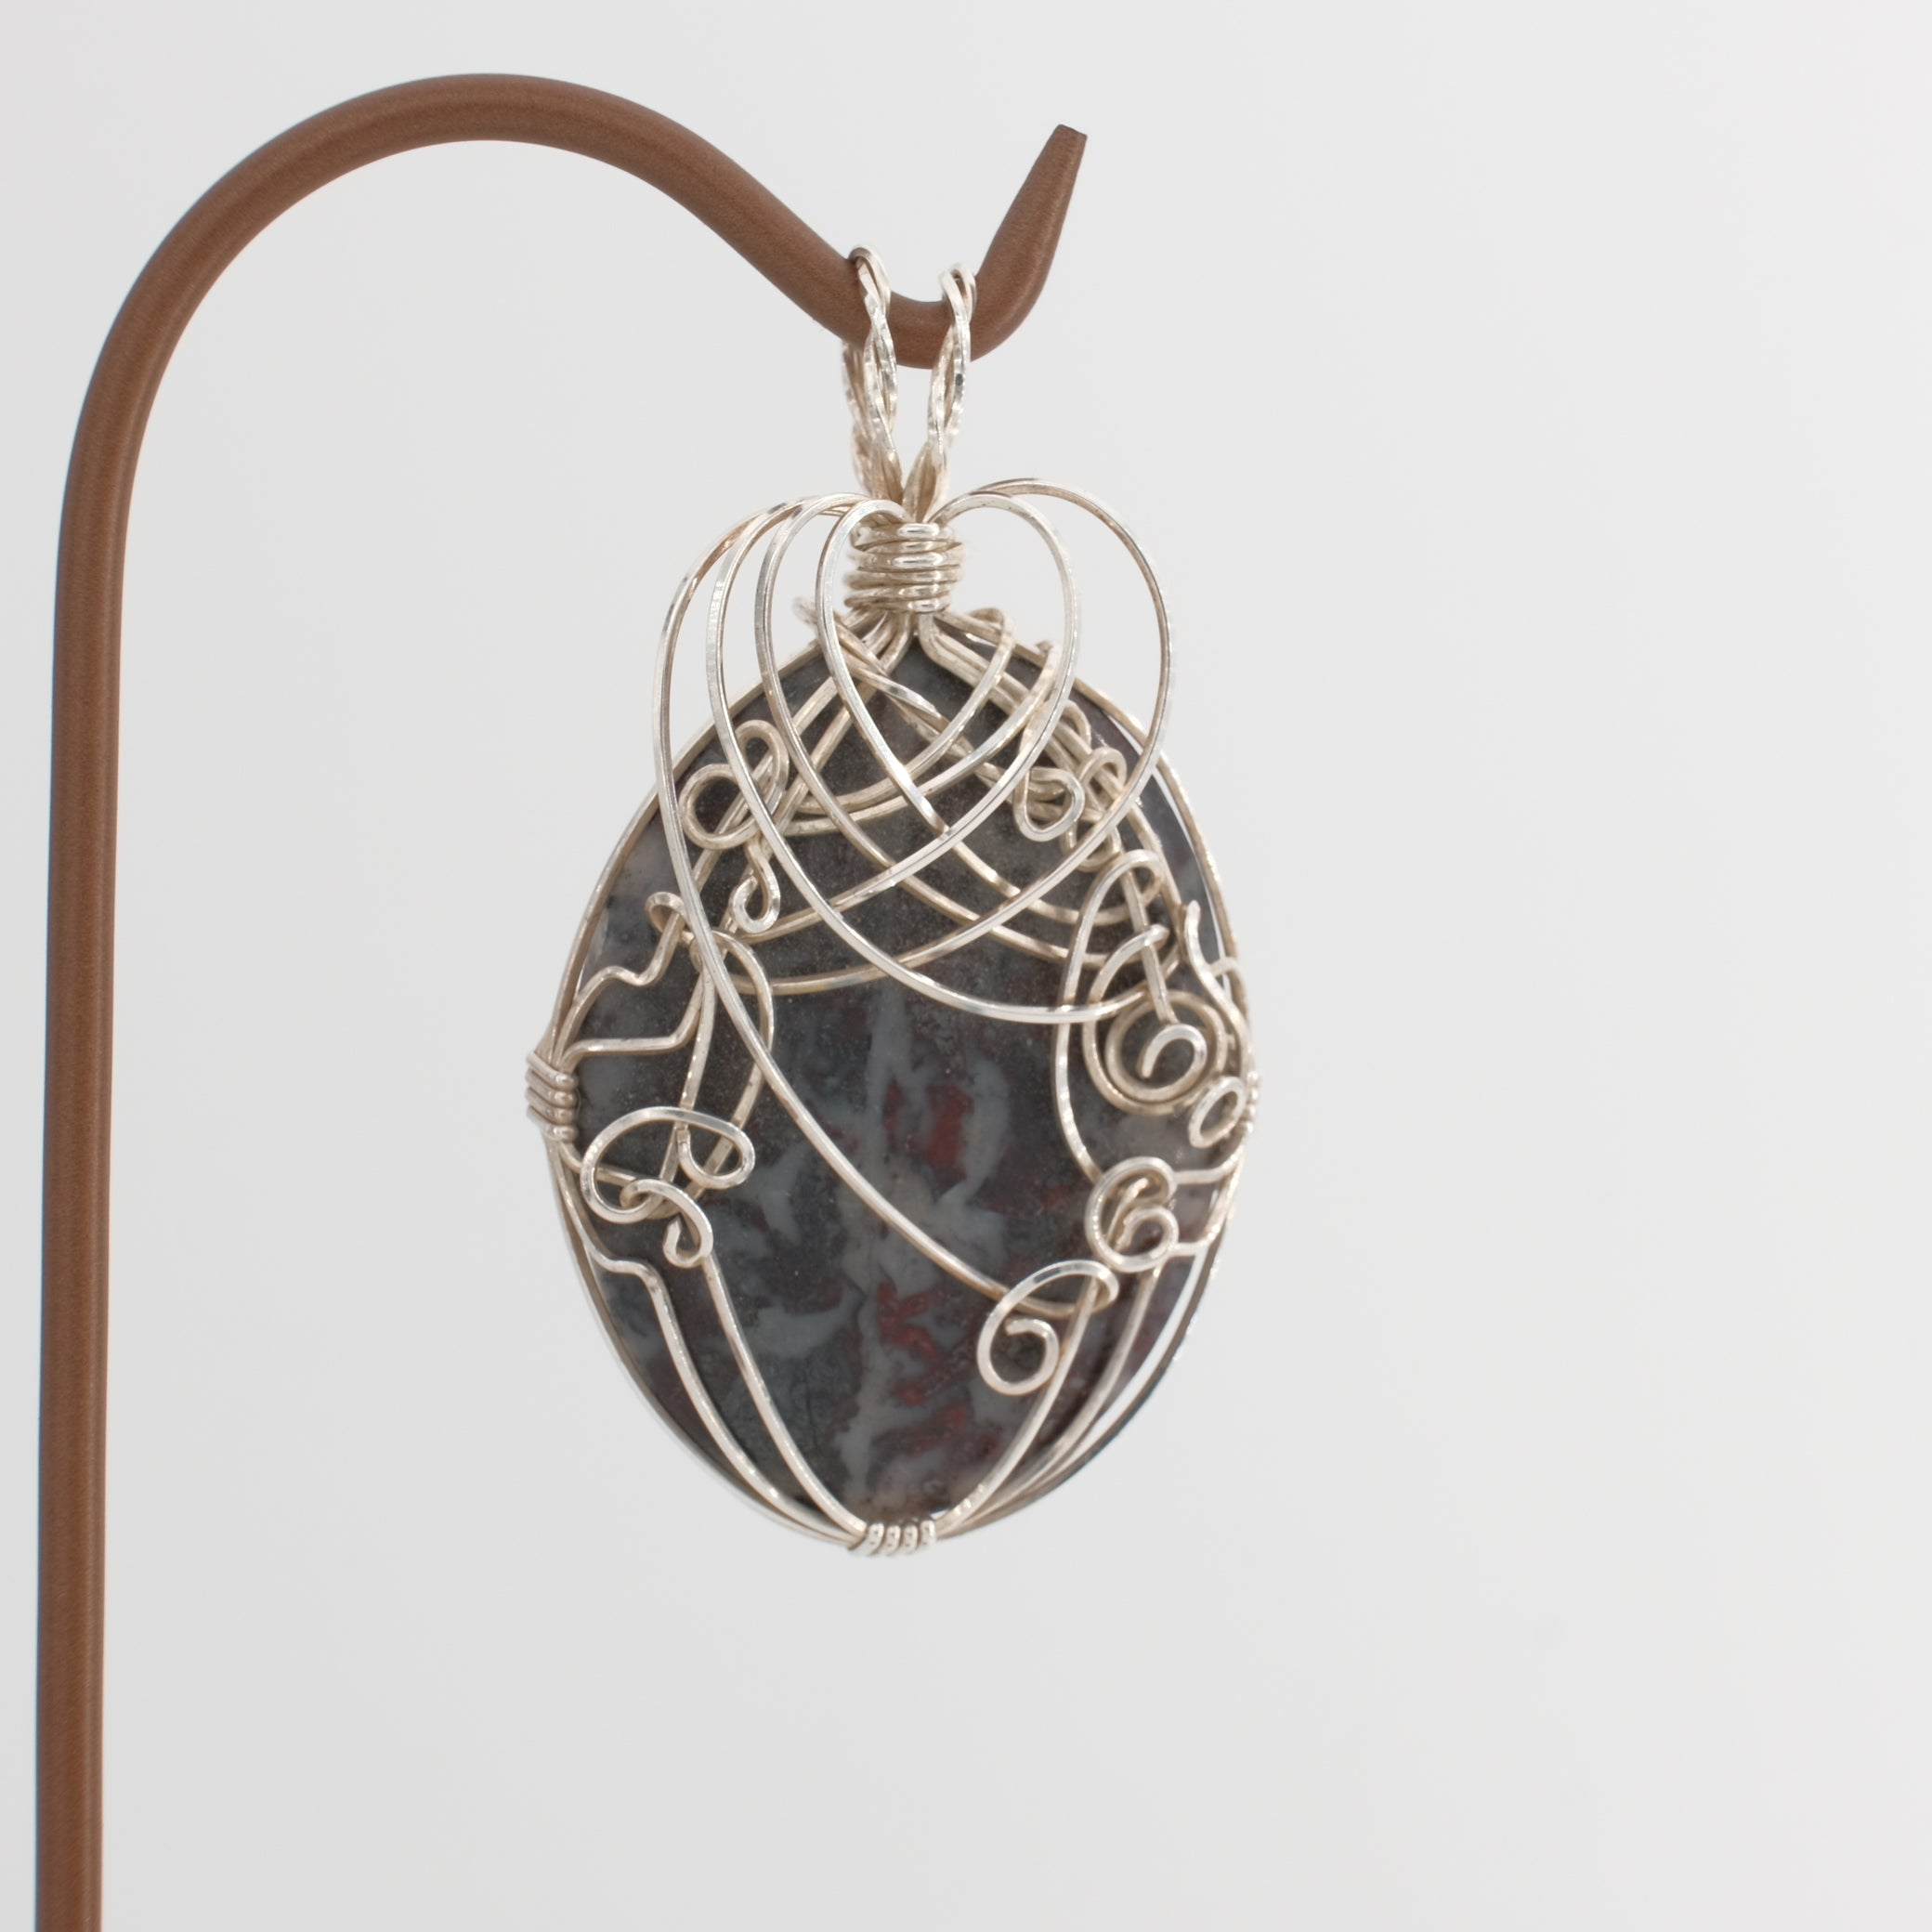 Hand Polished Jasper Cabochon Pendant Wrapped in Sterling Silver